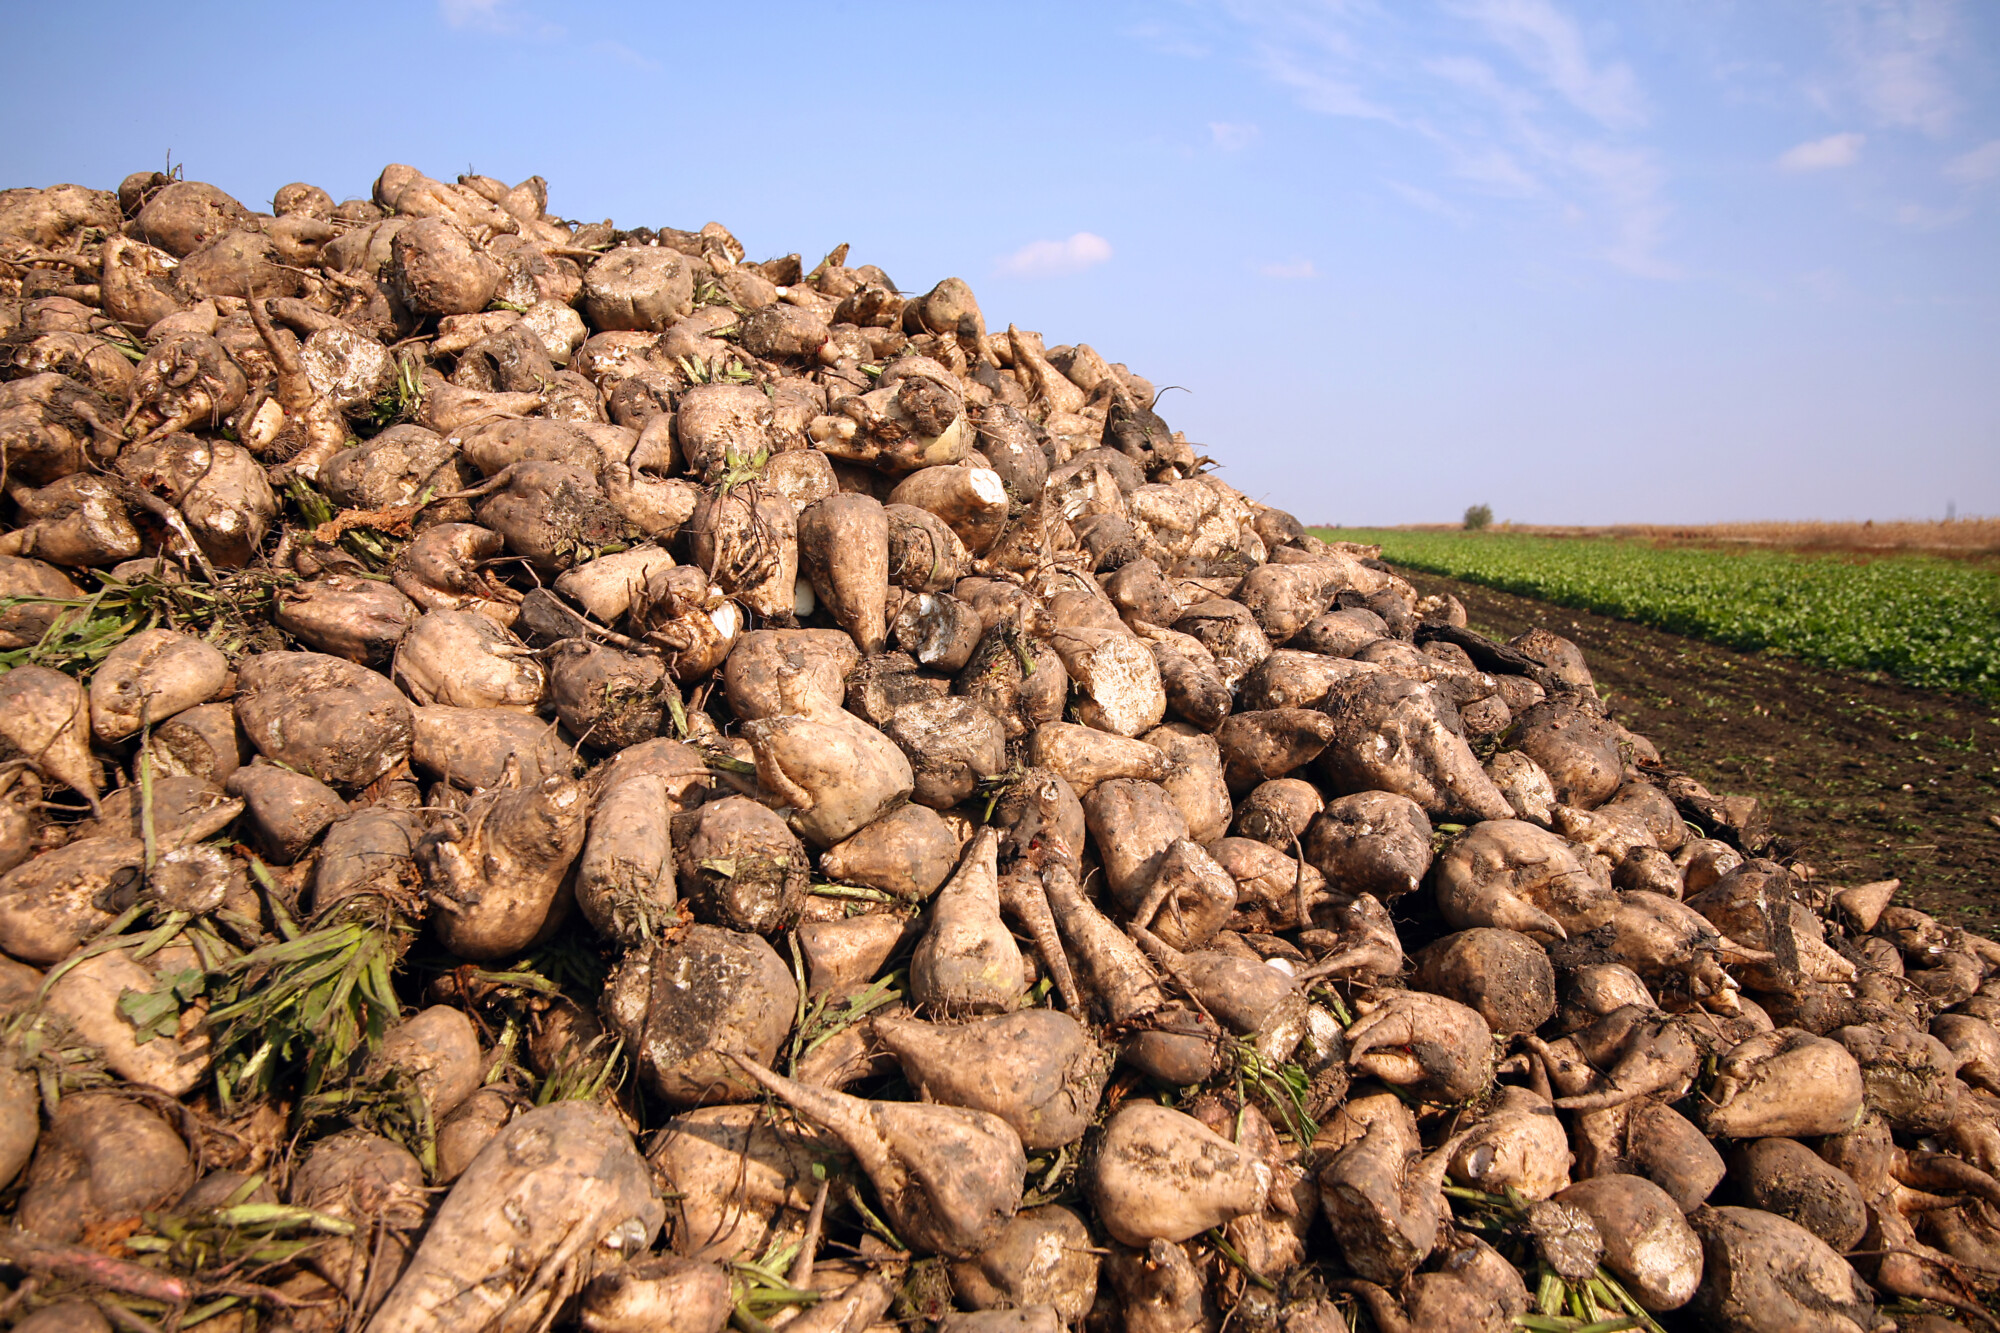 Sugar beet contract agreed for 2022